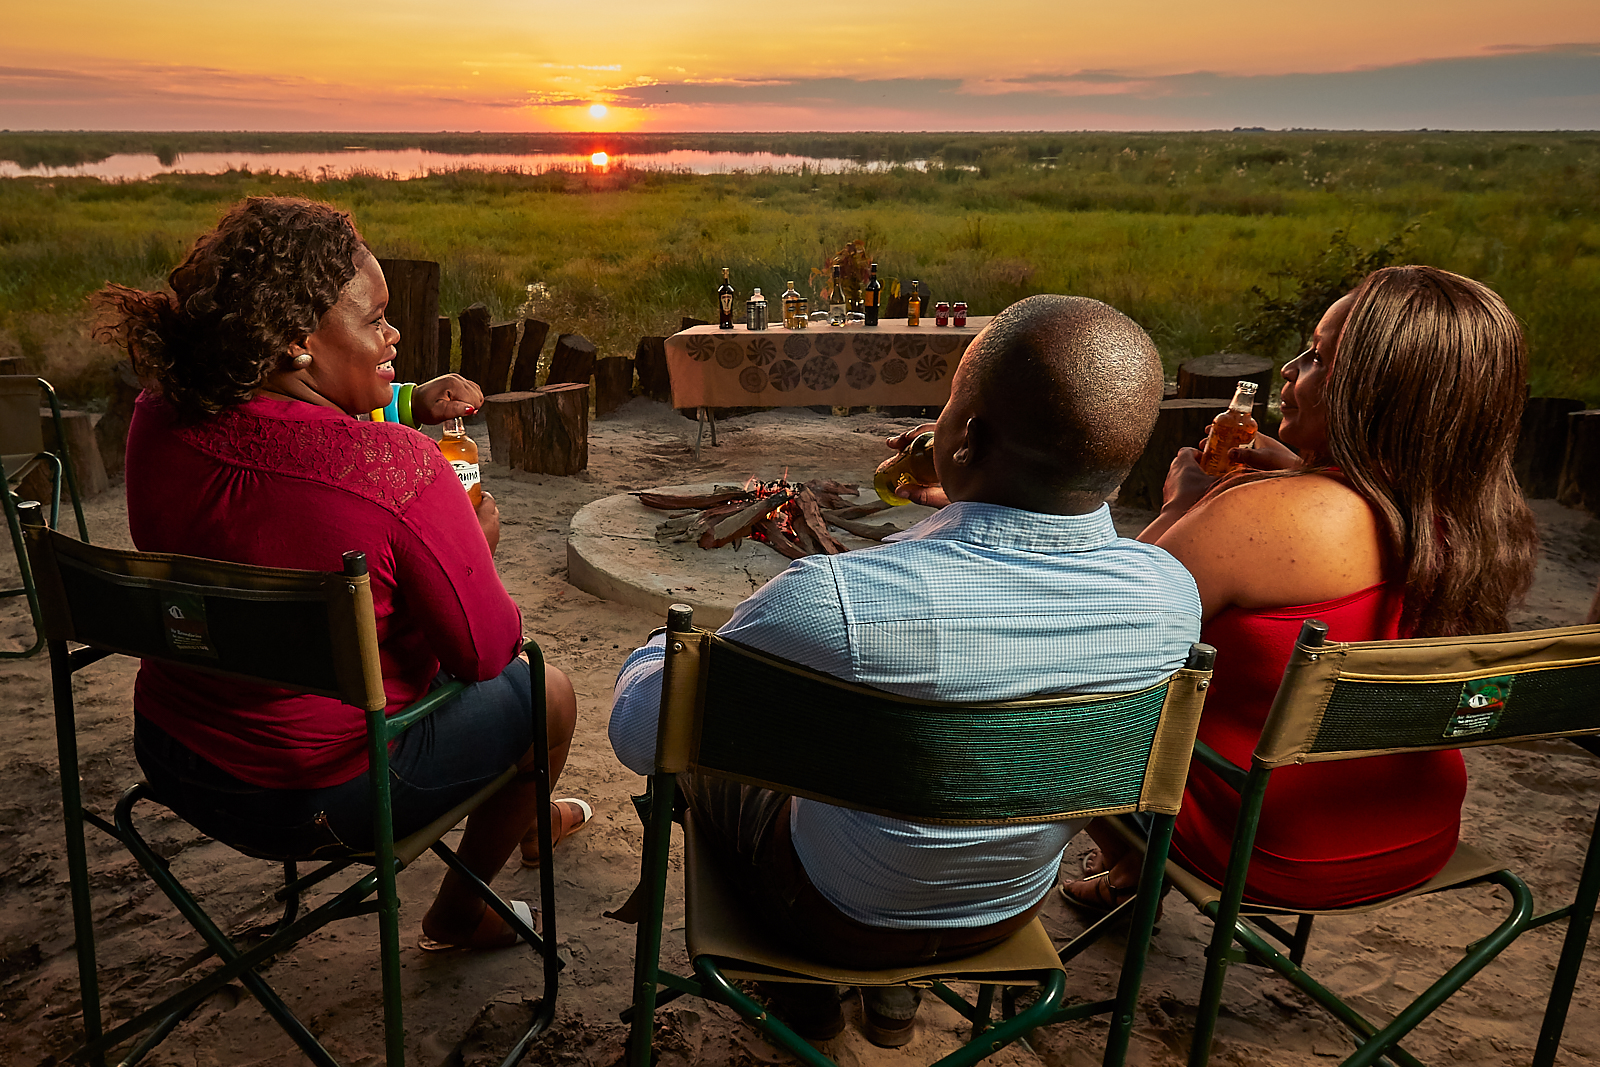 The Boma - The best way to re-connect with our roots and with mother nature is in front of the boma, by the campfire. Here we can share our amazing stories from the day, or if we wish, just sit and enjoy the silence.